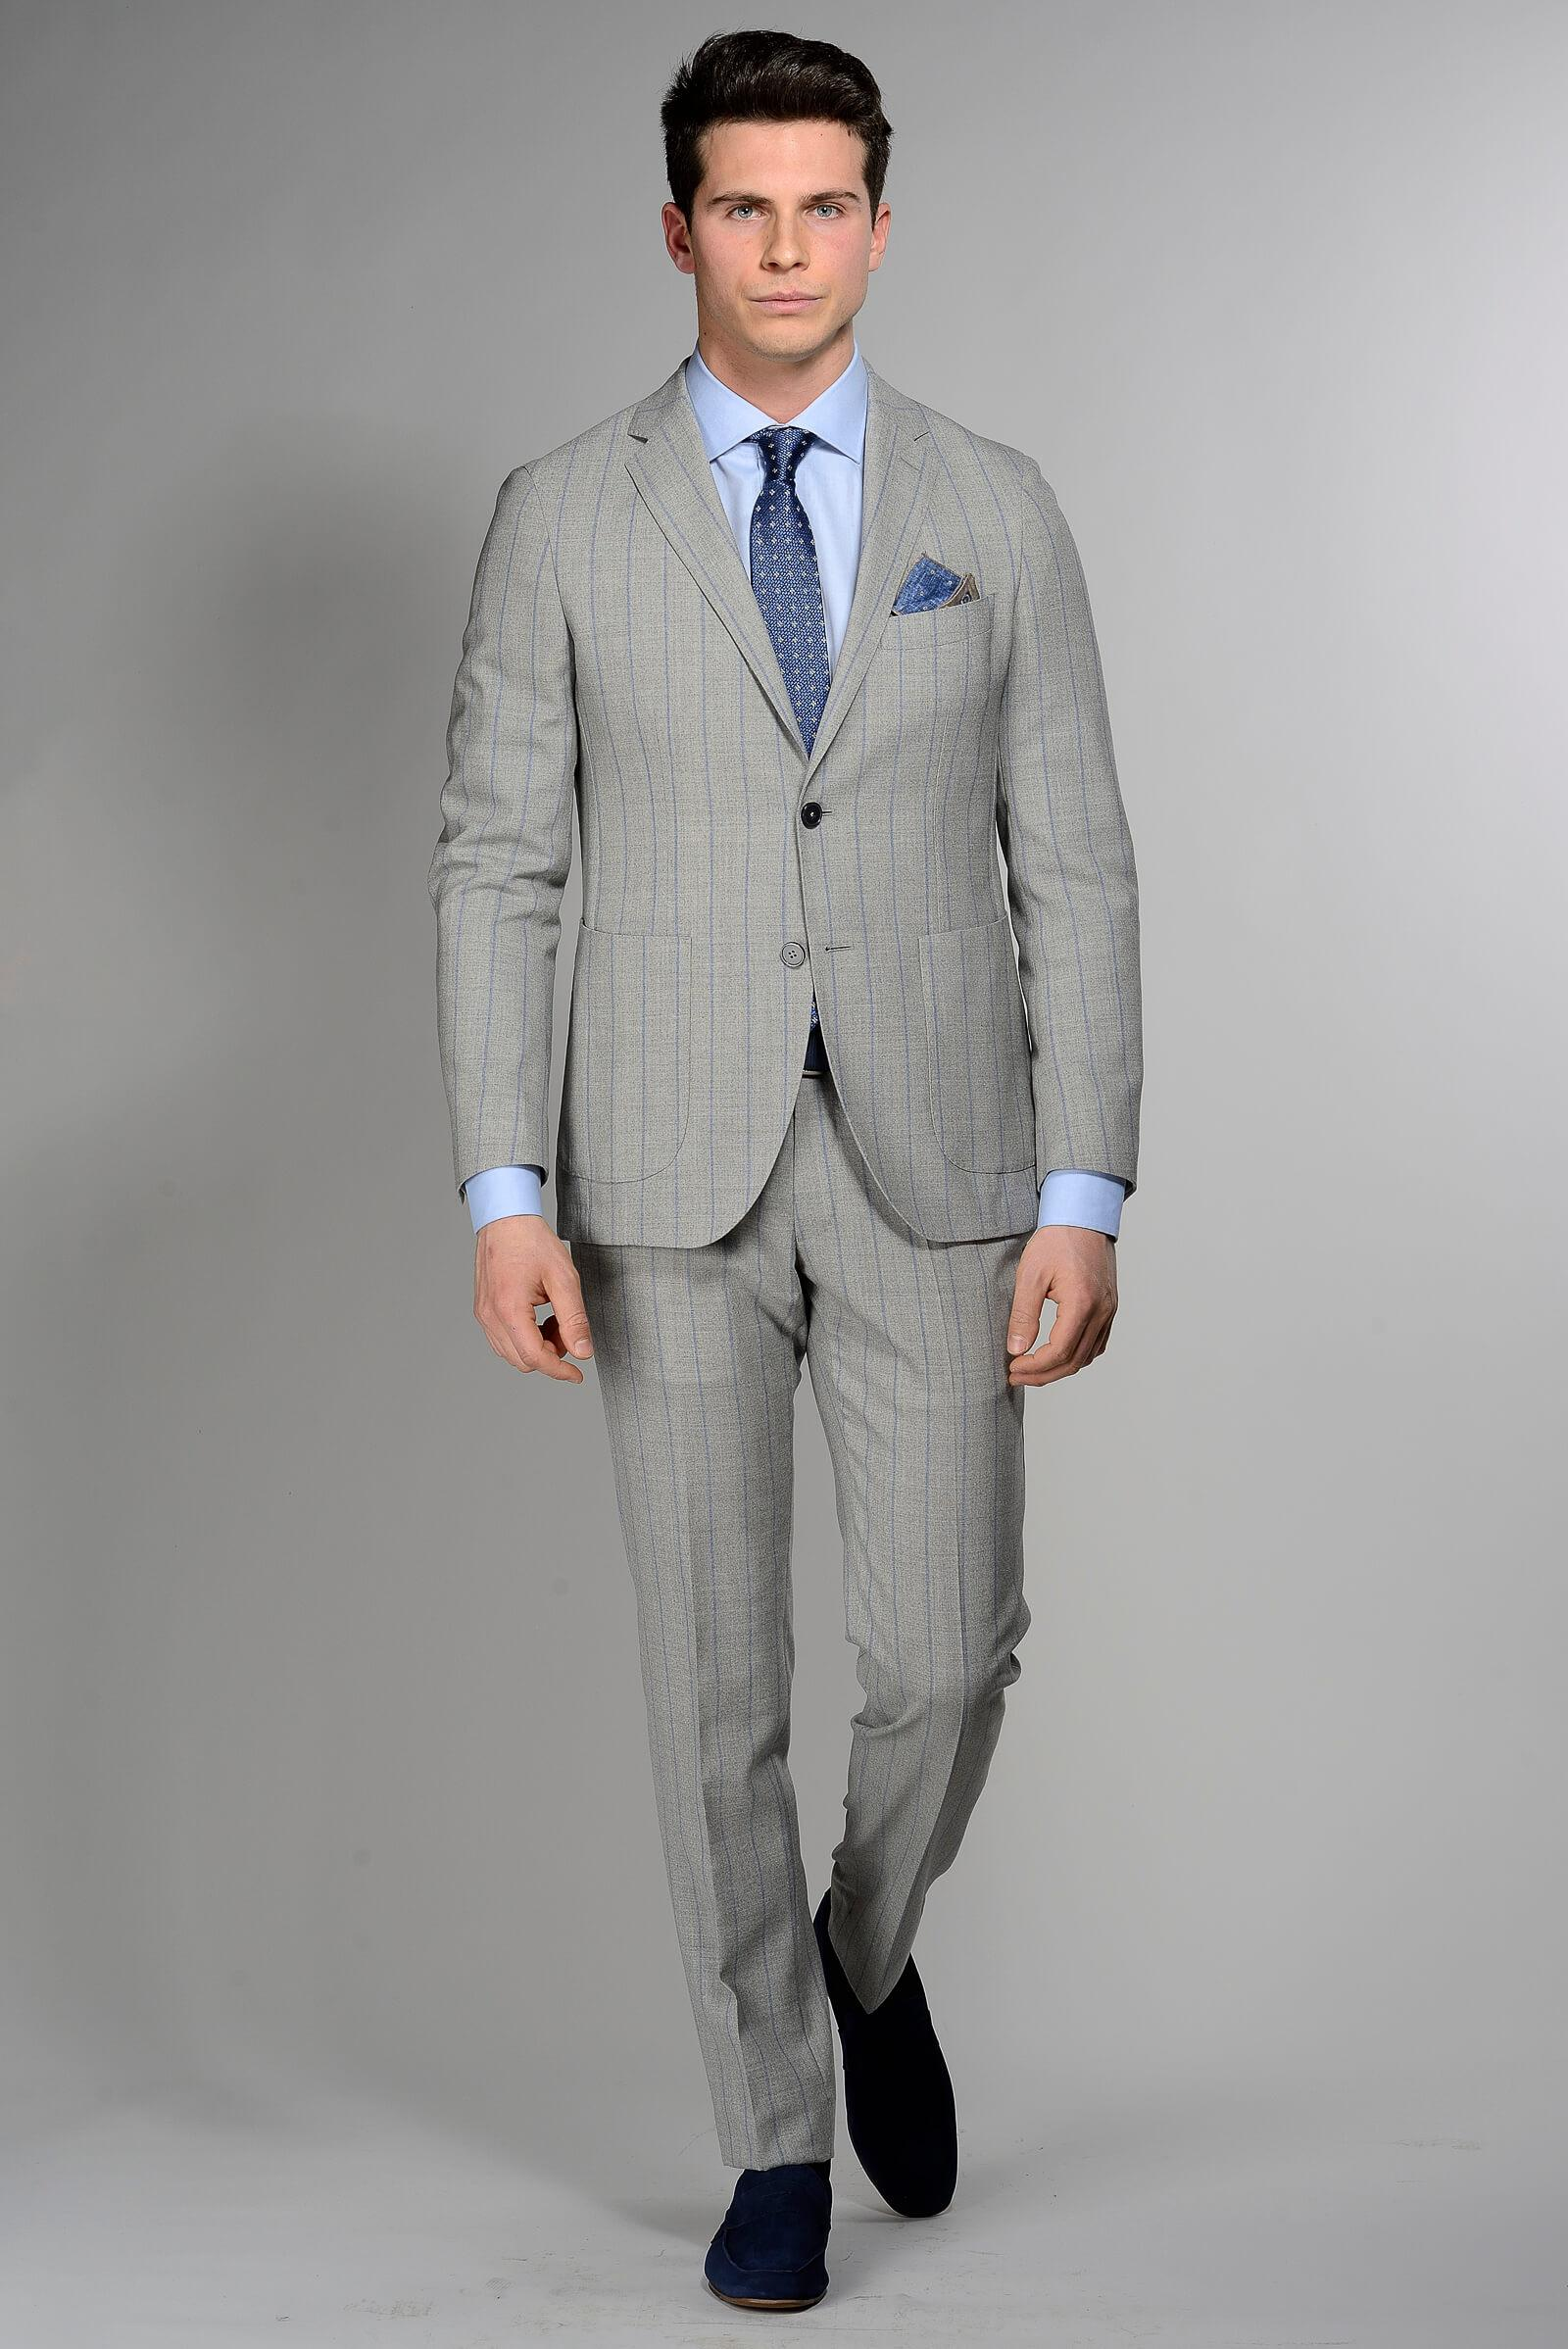 CASUAL LOOK WITH SUIT Angelico